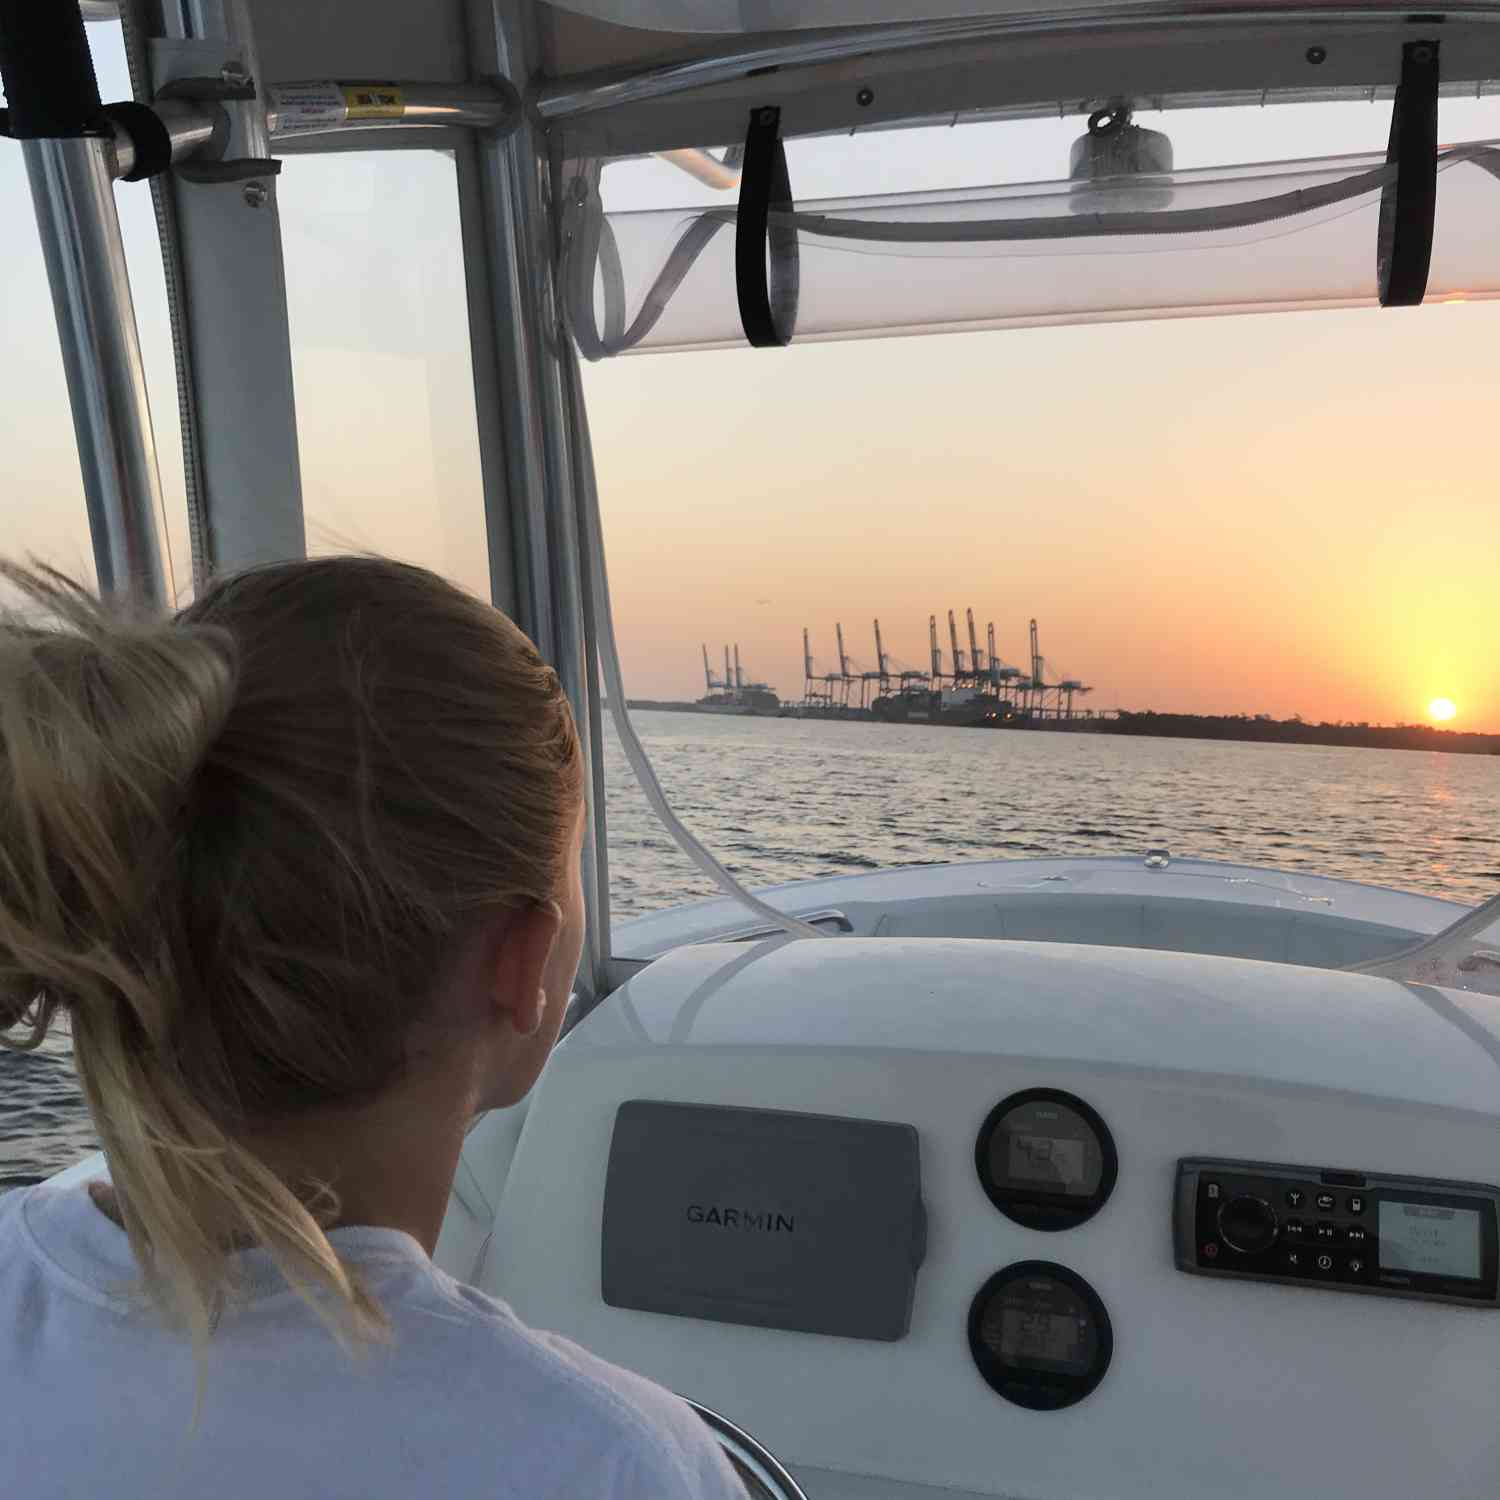 Title: Sunrise with my sweetheart - On board their Sportsman Heritage 231 Center Console - Location: Daniel Island SC. Participating in the Photo Contest #SportsmanJuly2018